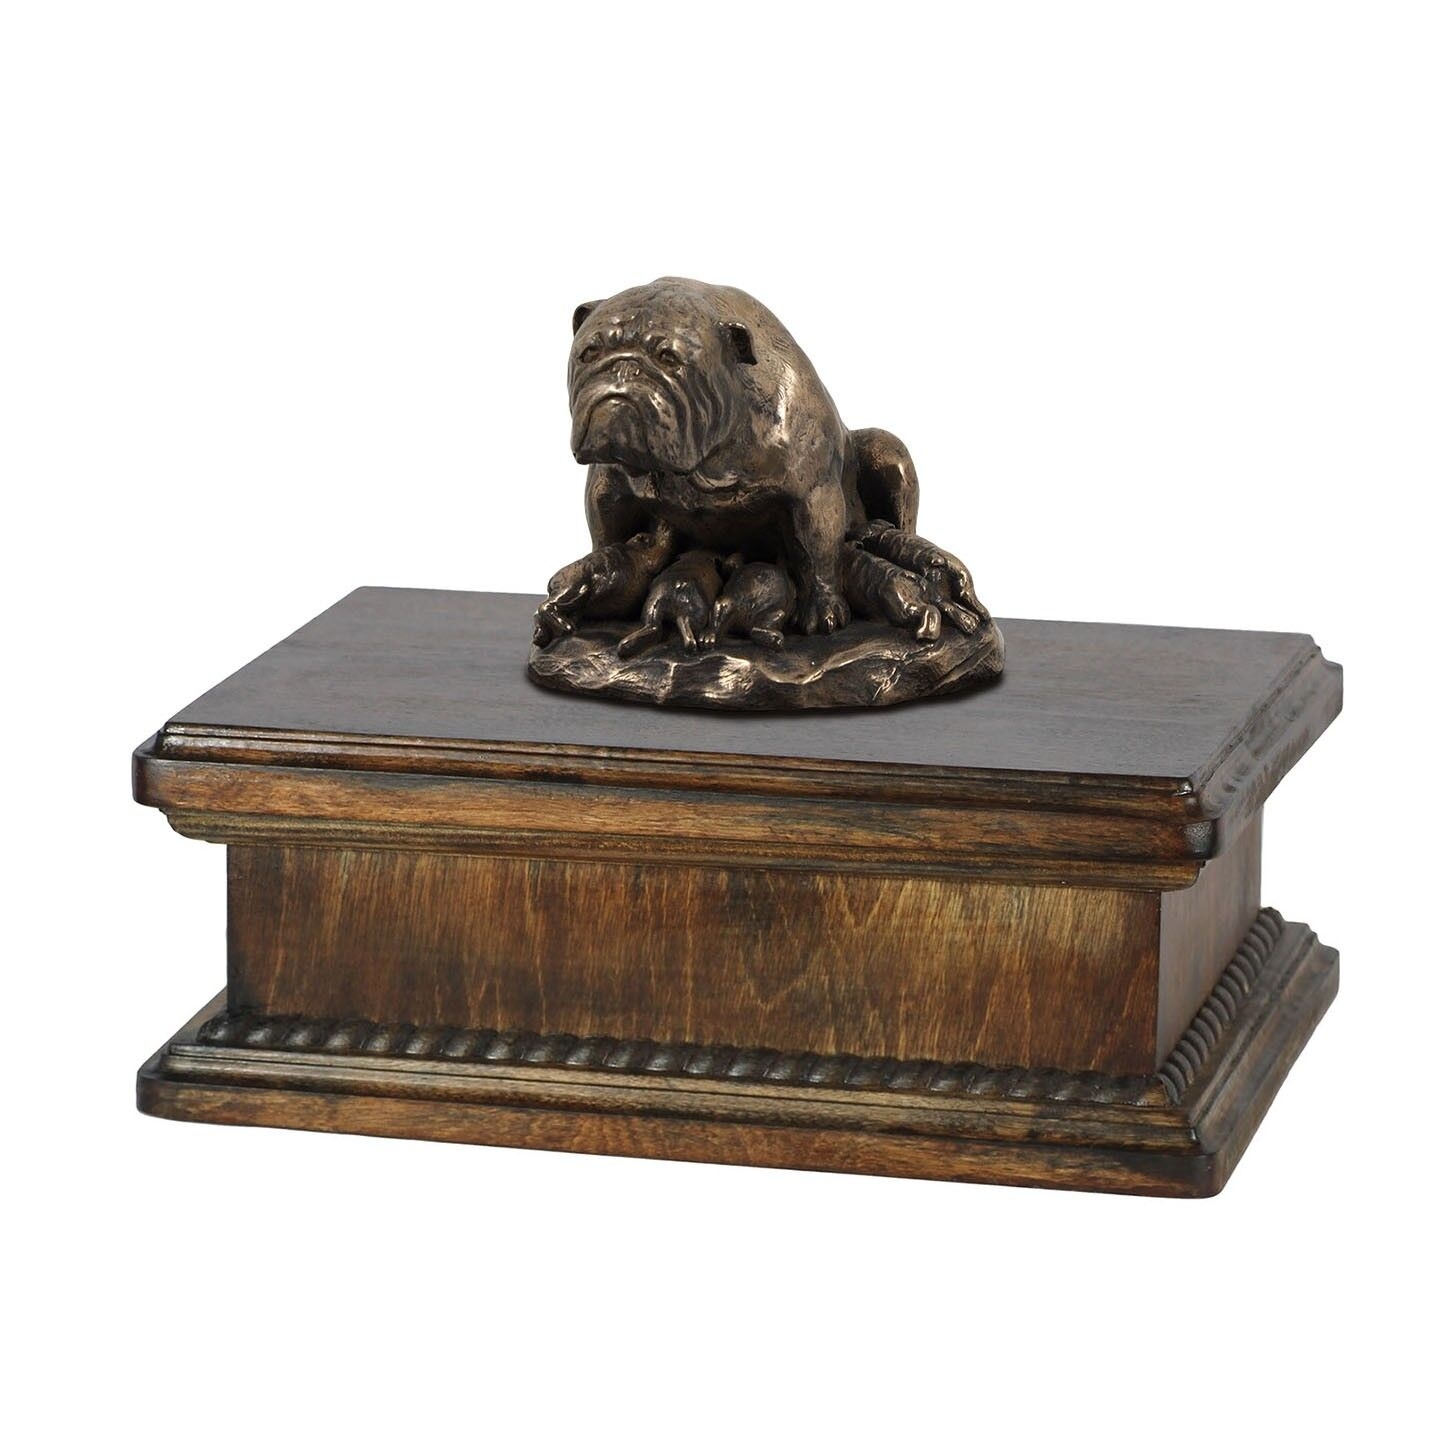 Bulldog type 2 - exclusive urn with dog statue, High Quality, Art Dog